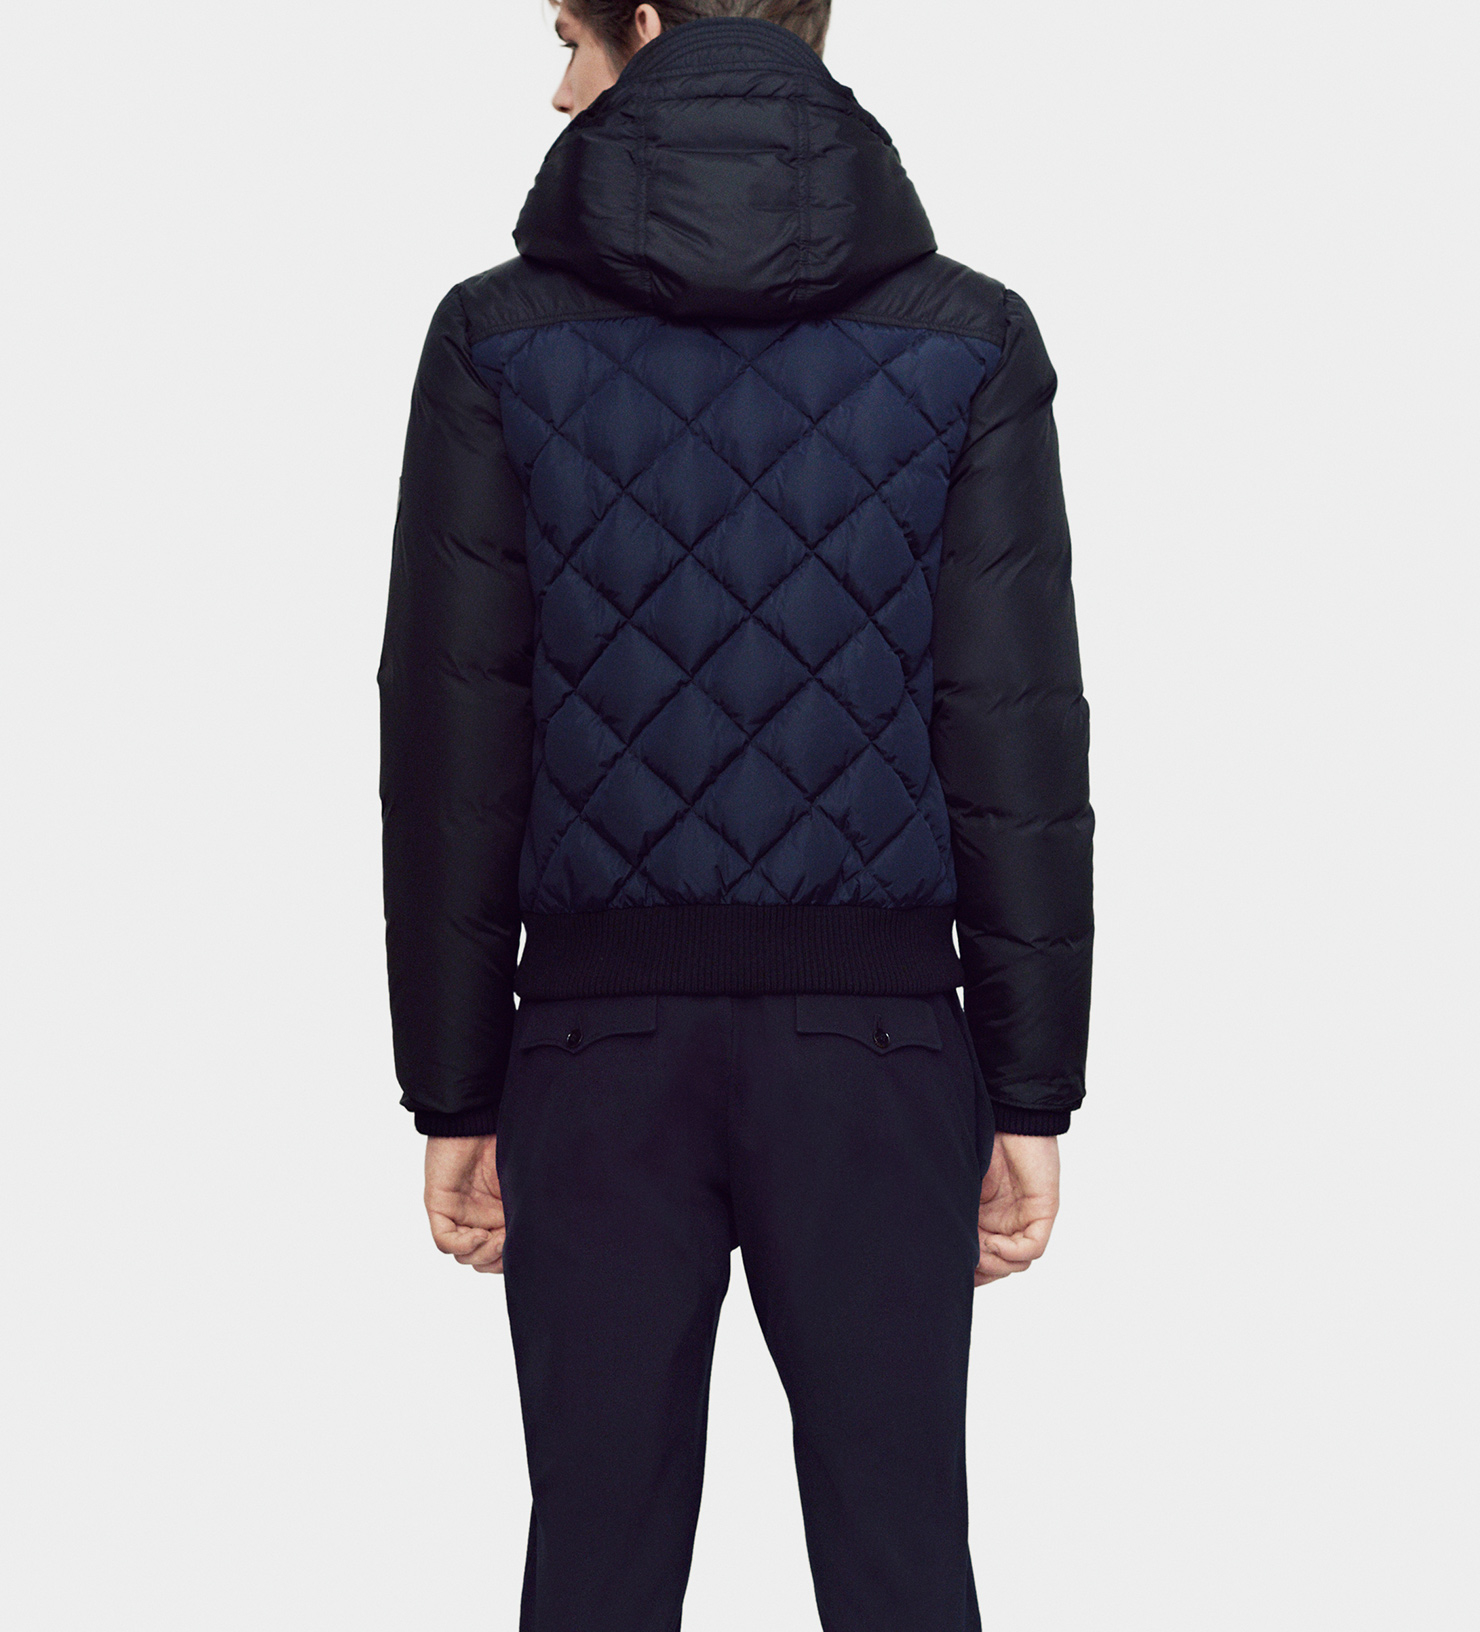 Gucci Lightweight Nylon Quilted Down Filled Jacket in Black for ...